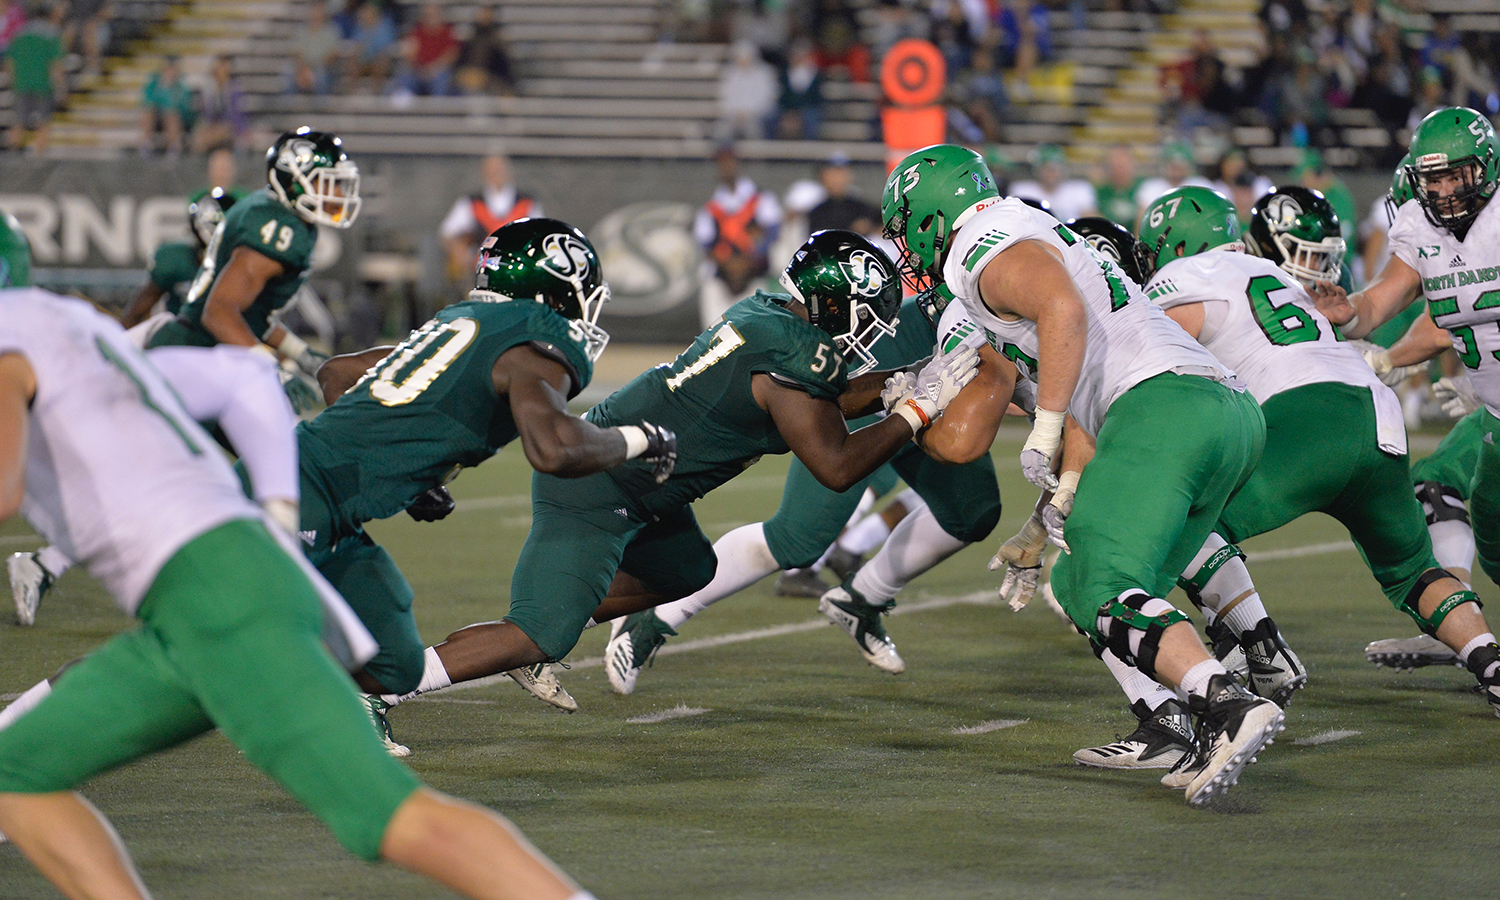 FOOTBALL FALLS IN HOMECOMING GAME AGAINST NORTH DAKOTA